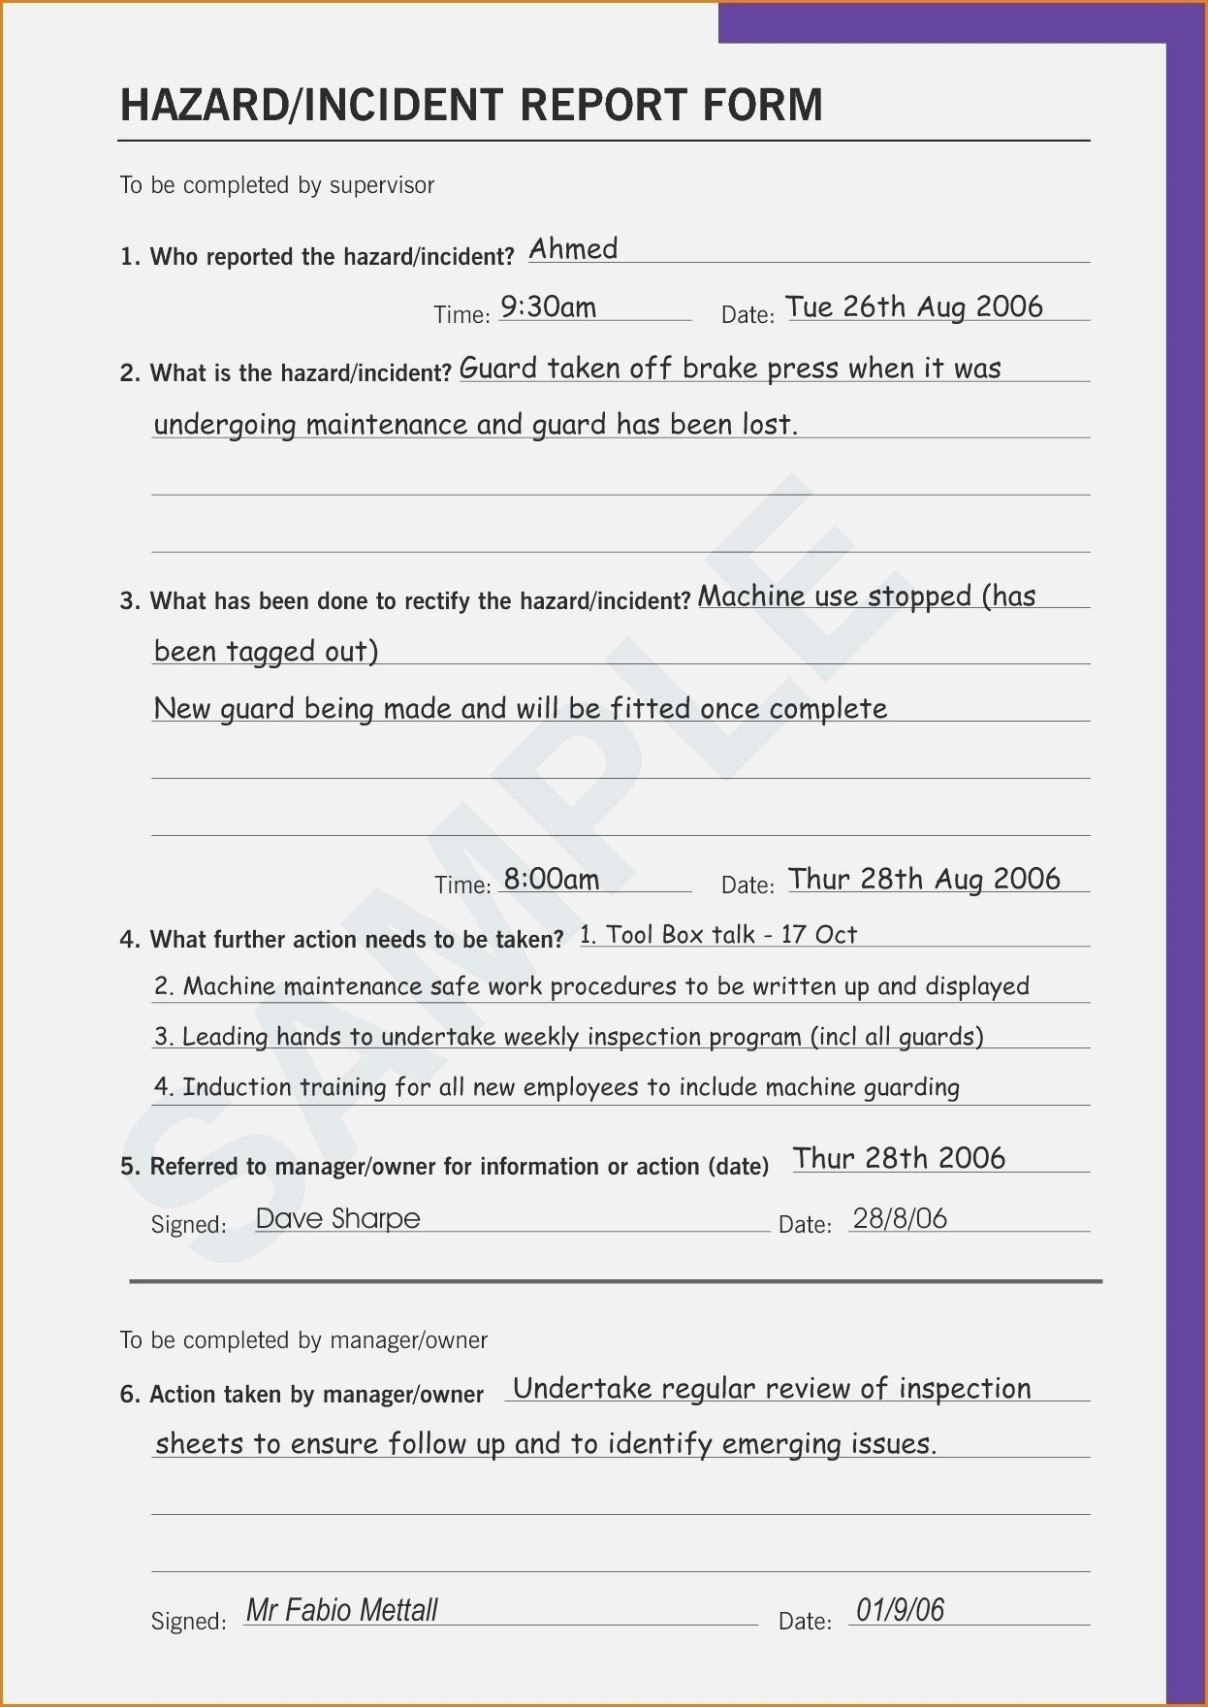 Easy Rules Of Rma Form  Realty Executives Mi  Invoice And Regarding Incident Hazard Report Form Template